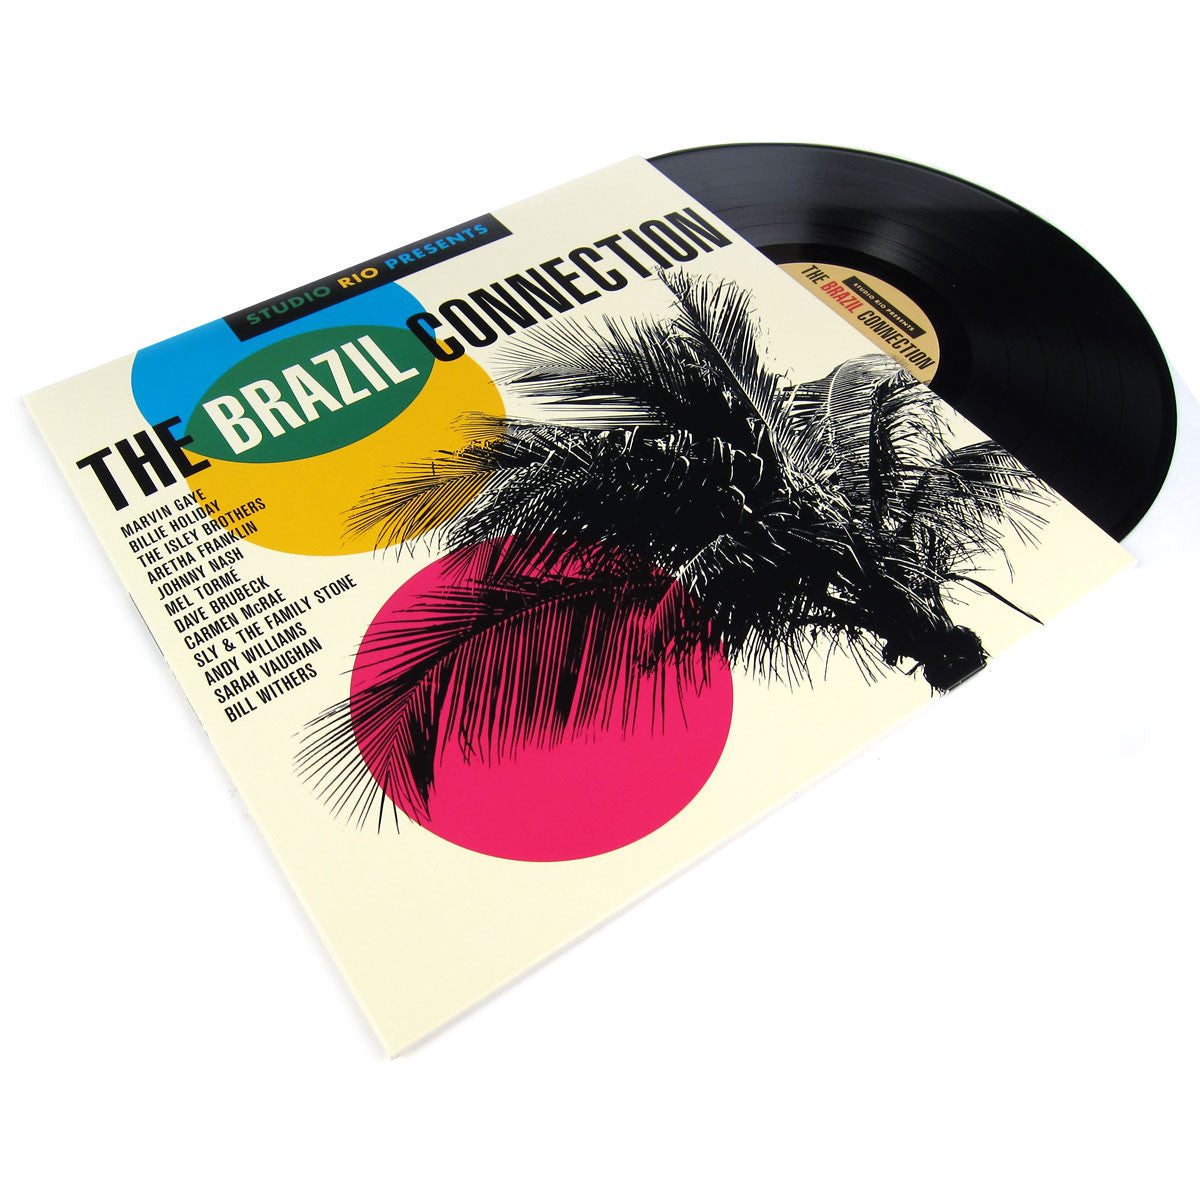 Studio Rio: Studio Rio Presents The Brazil Connection Vinyl LP